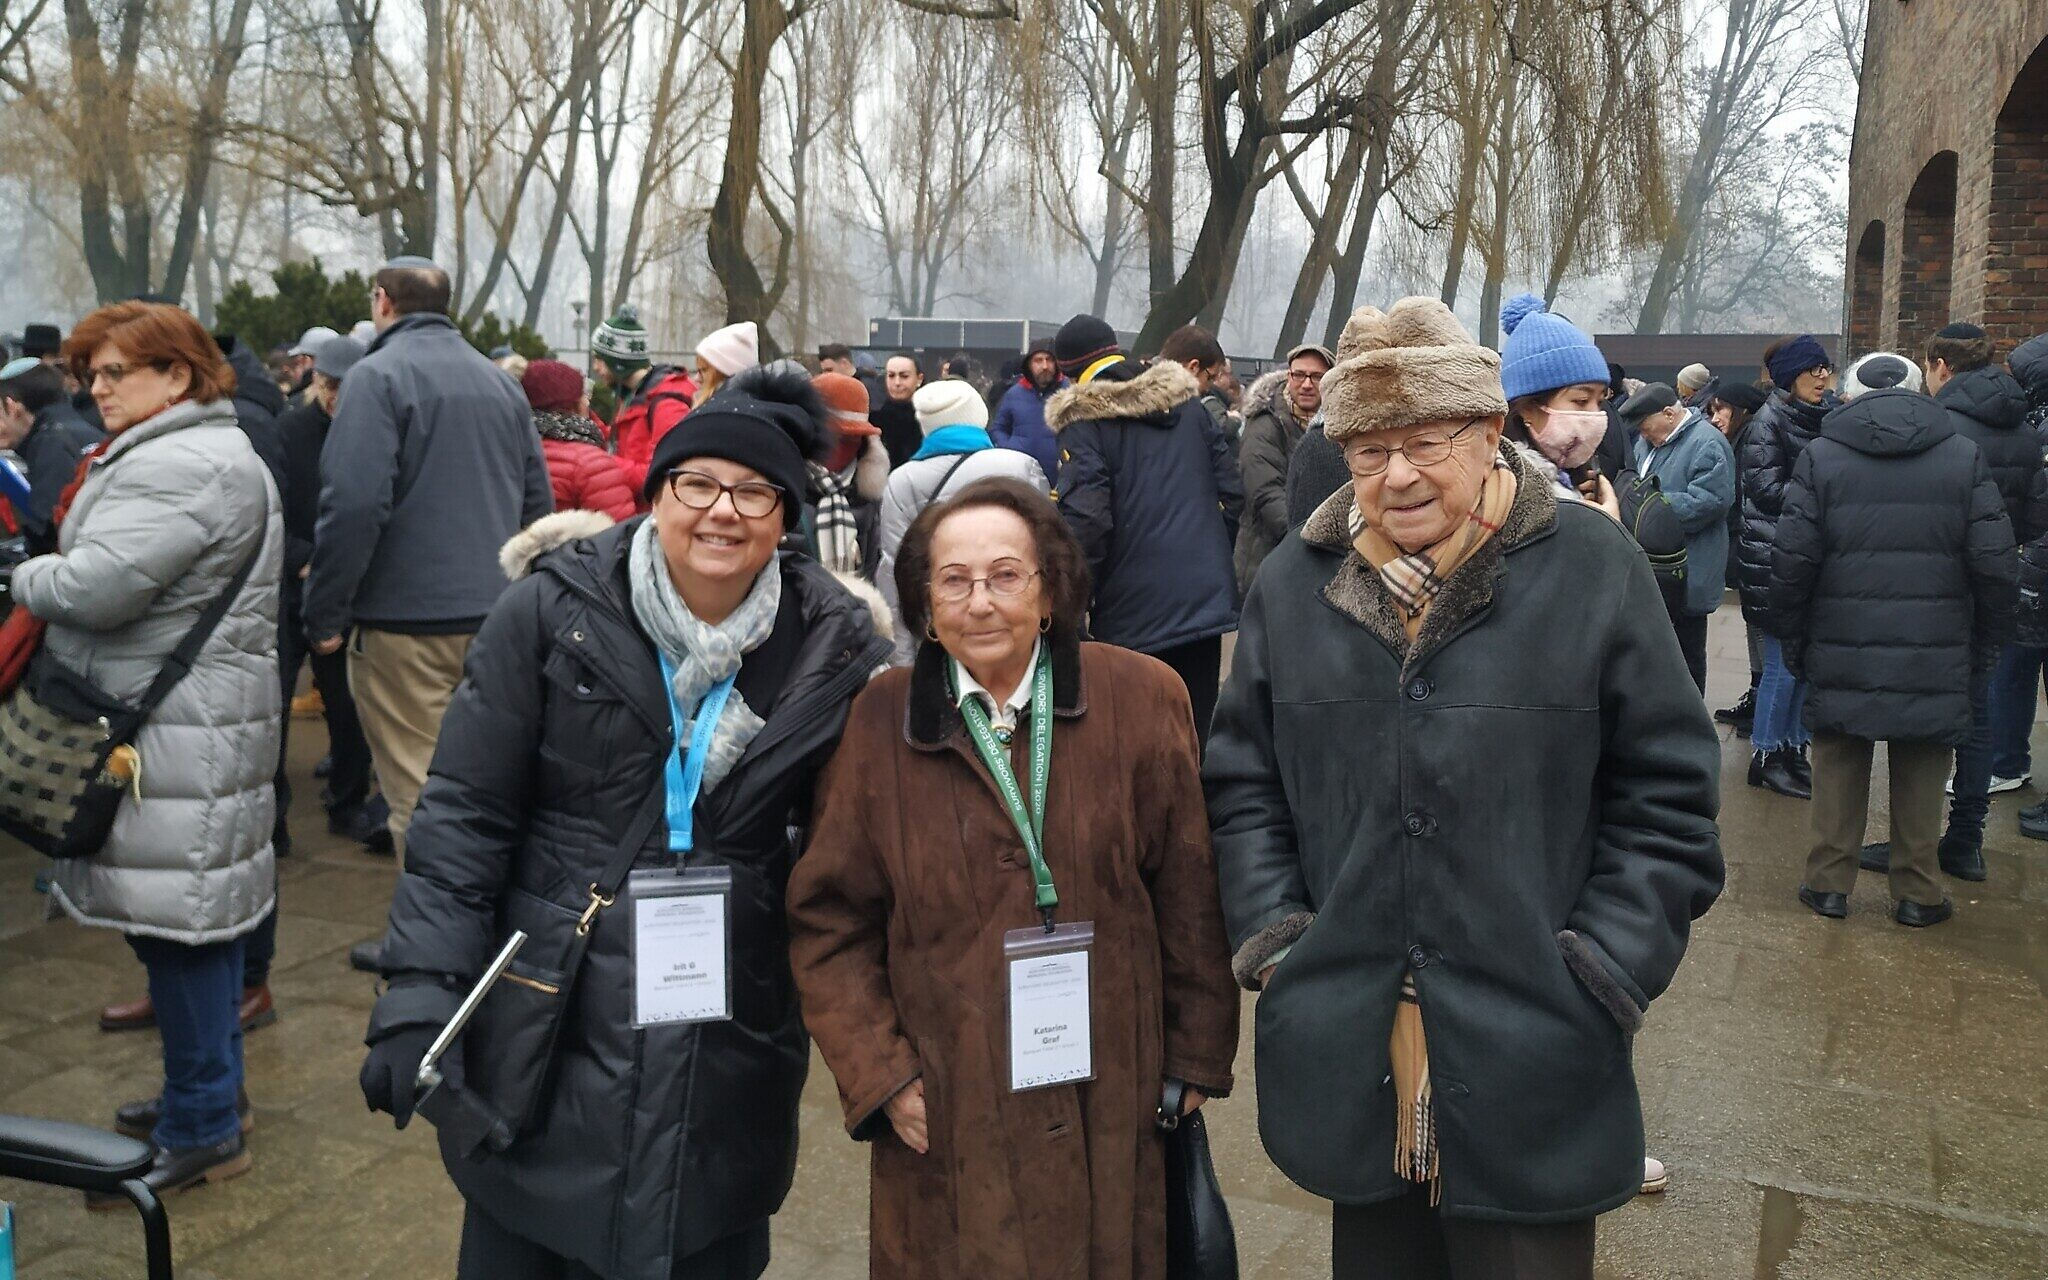 From left: Irit Wittmann, Katarina Graf, and Sol Graf pose in front of the Auschwitz-Birkenau Memorial and Museum, January 28, 2020. (Yaakov Schwartz/ Times of Israel)